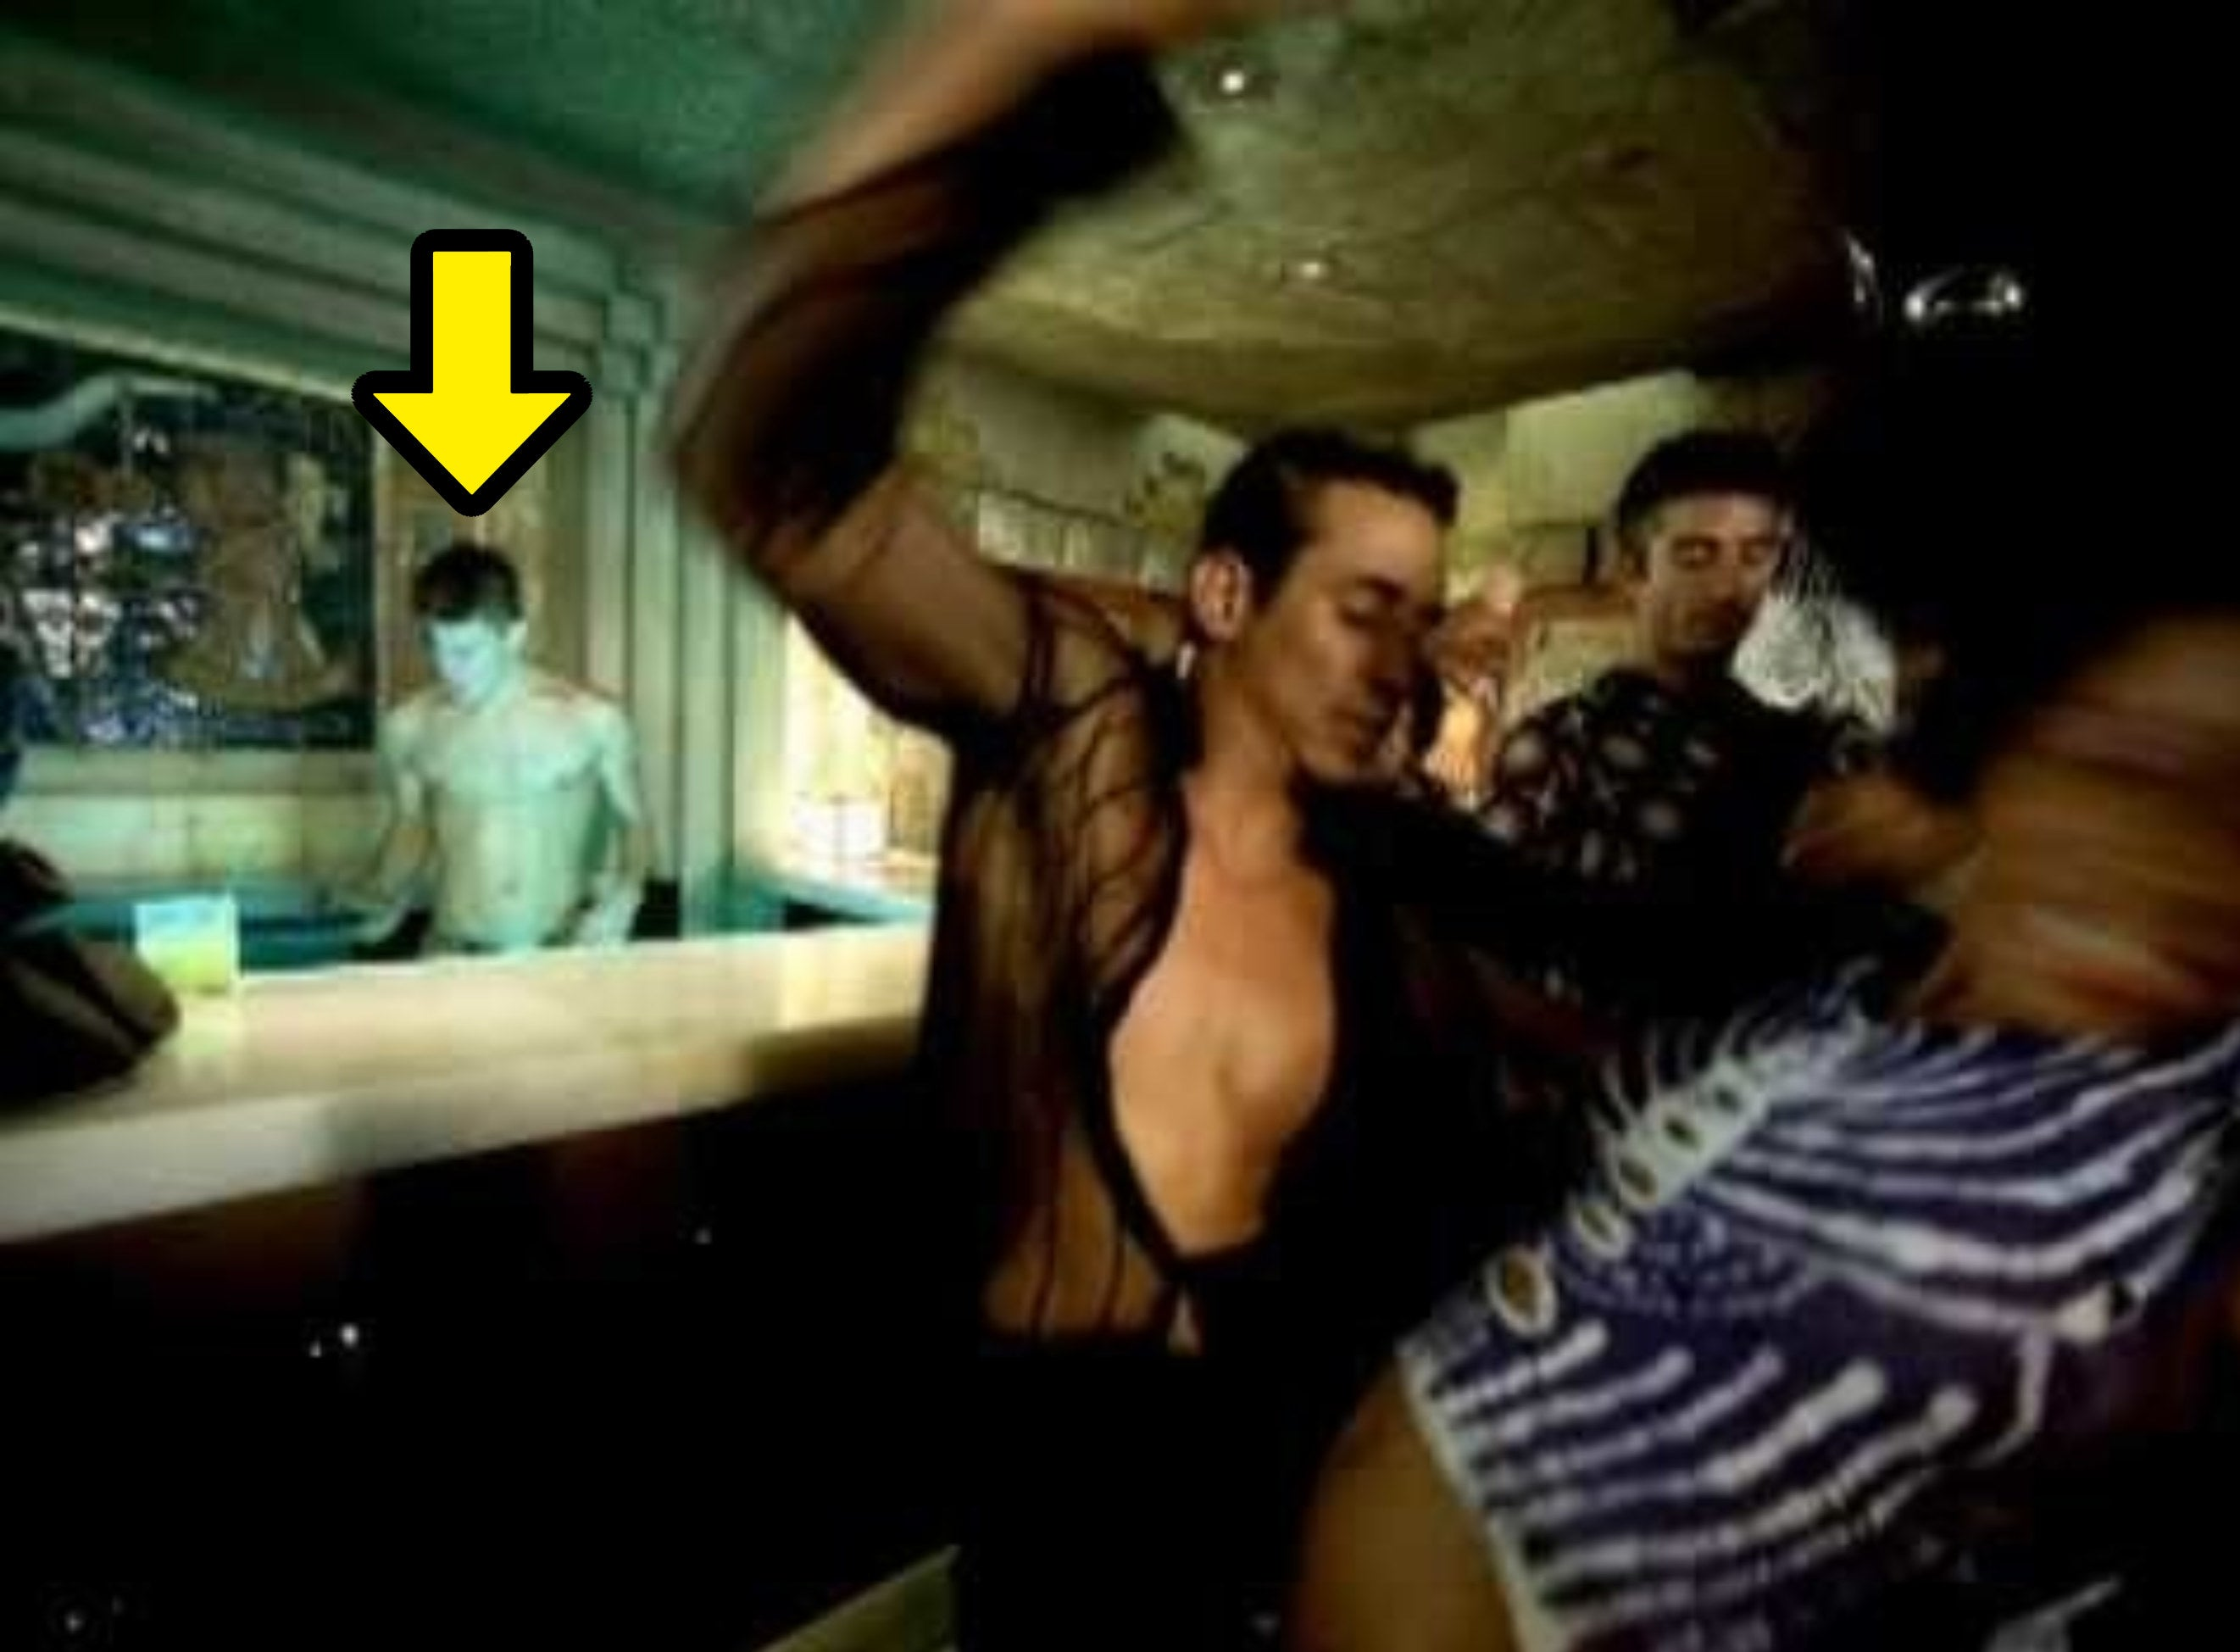 Channing shirtless behind the bar as Ricky dances